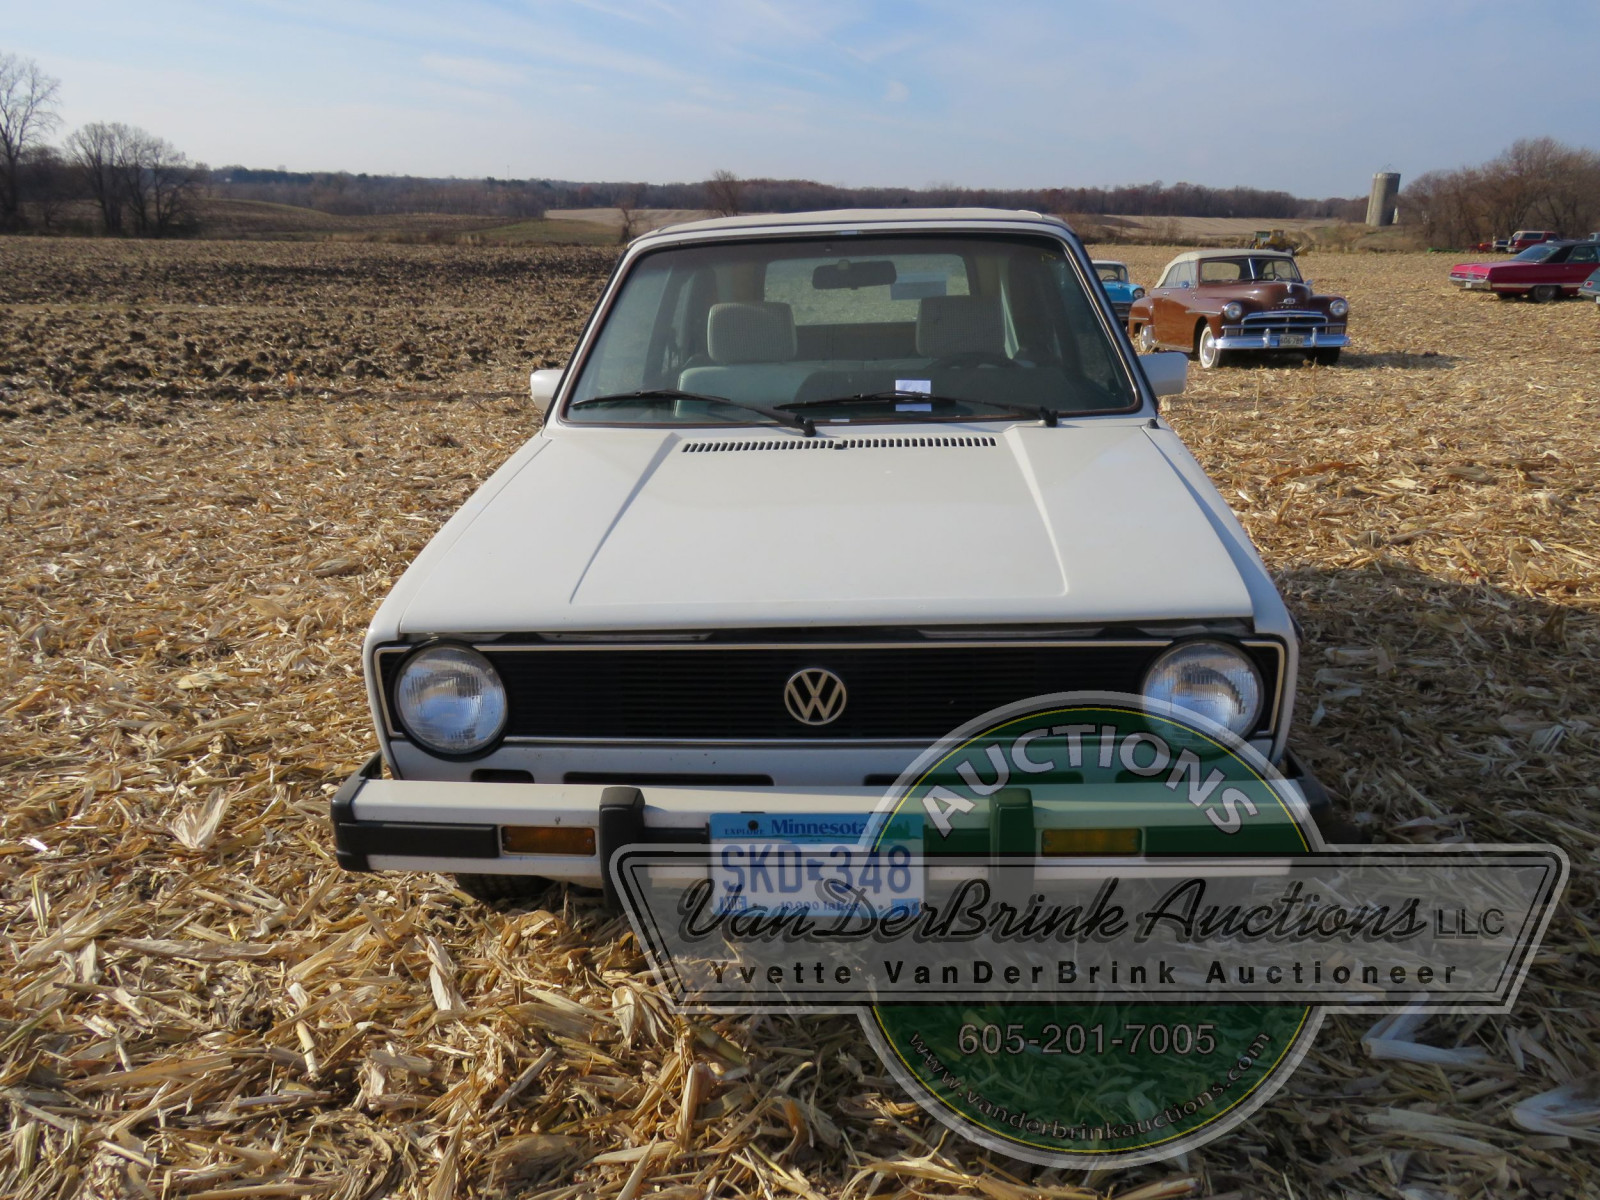 1985 VW Rabbit Karmann Convertible - Image 2